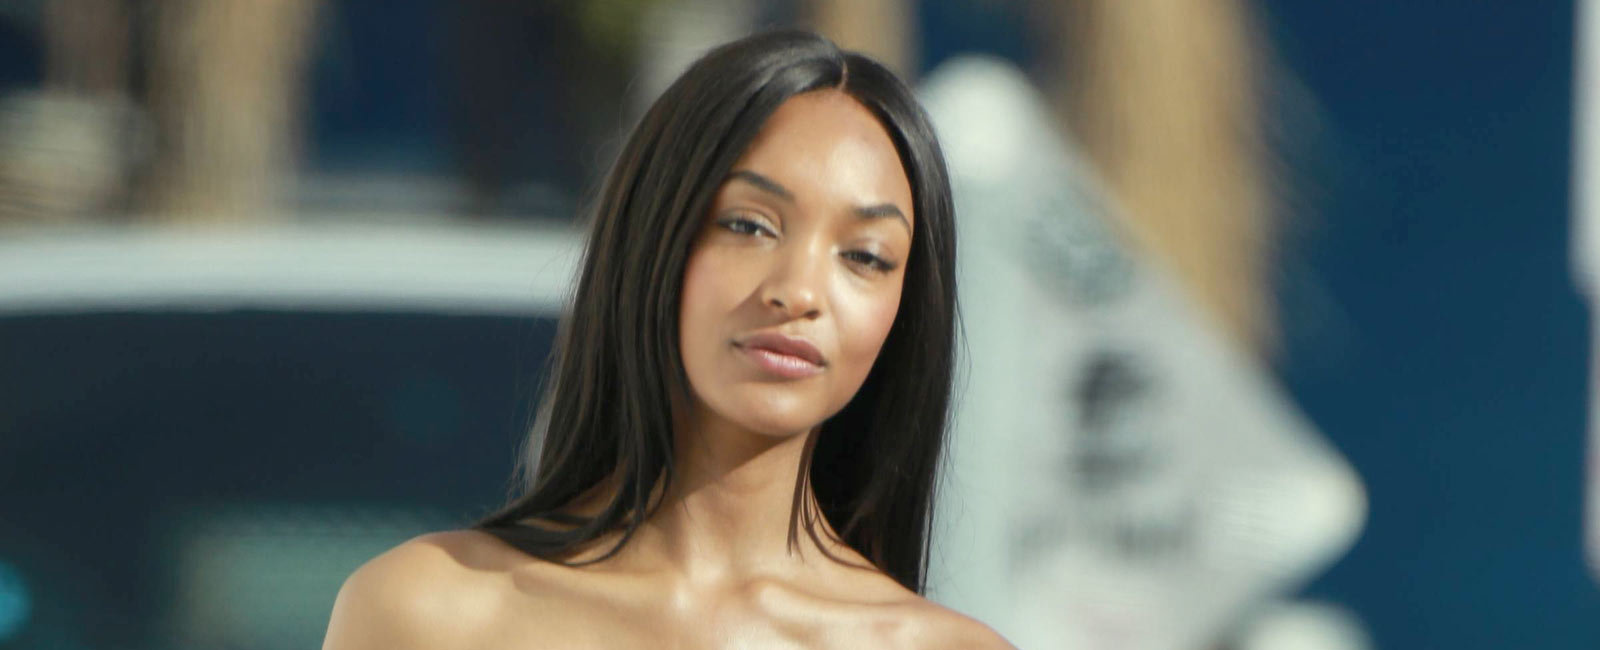 Jourdan Dunn, la top model que Victoria's Secret cambió por Kendall Jenner